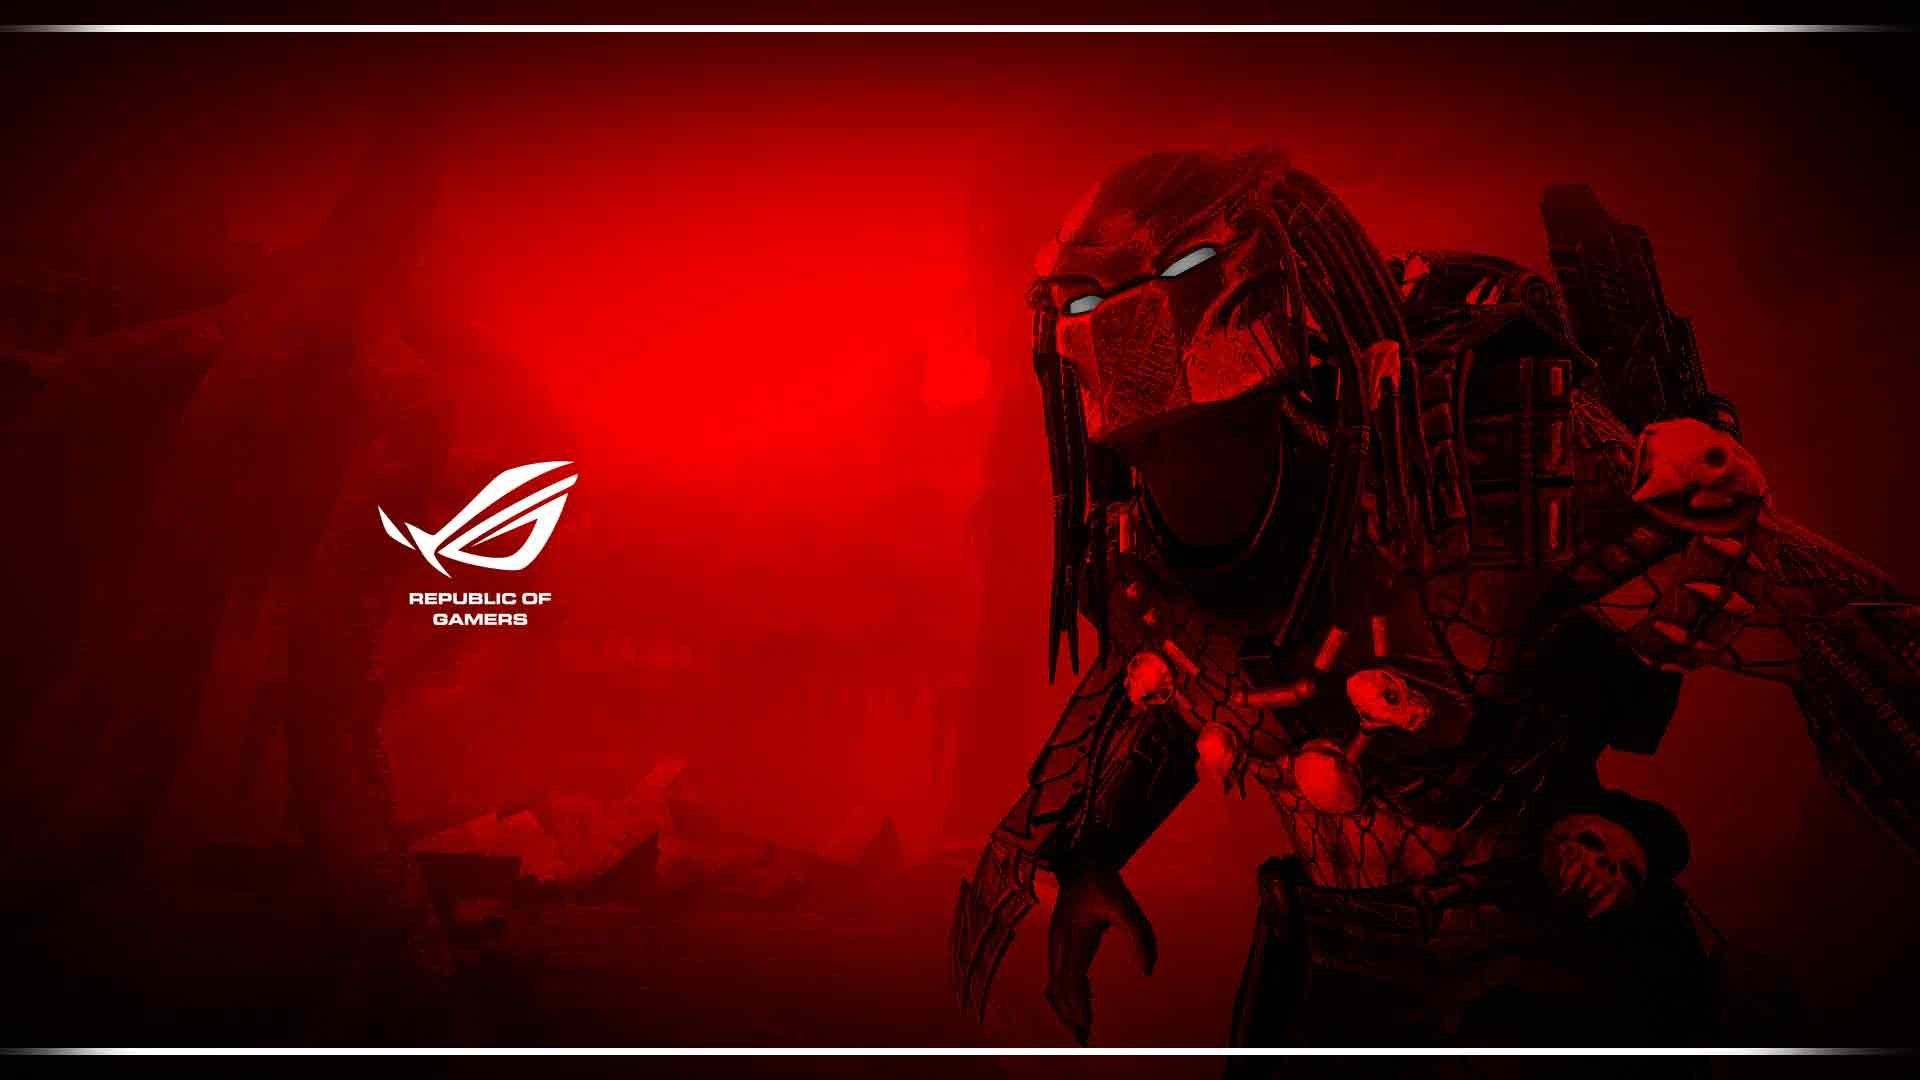 1920x1080 Red Alienware Wallpaper (29+ images) on Genchi.info